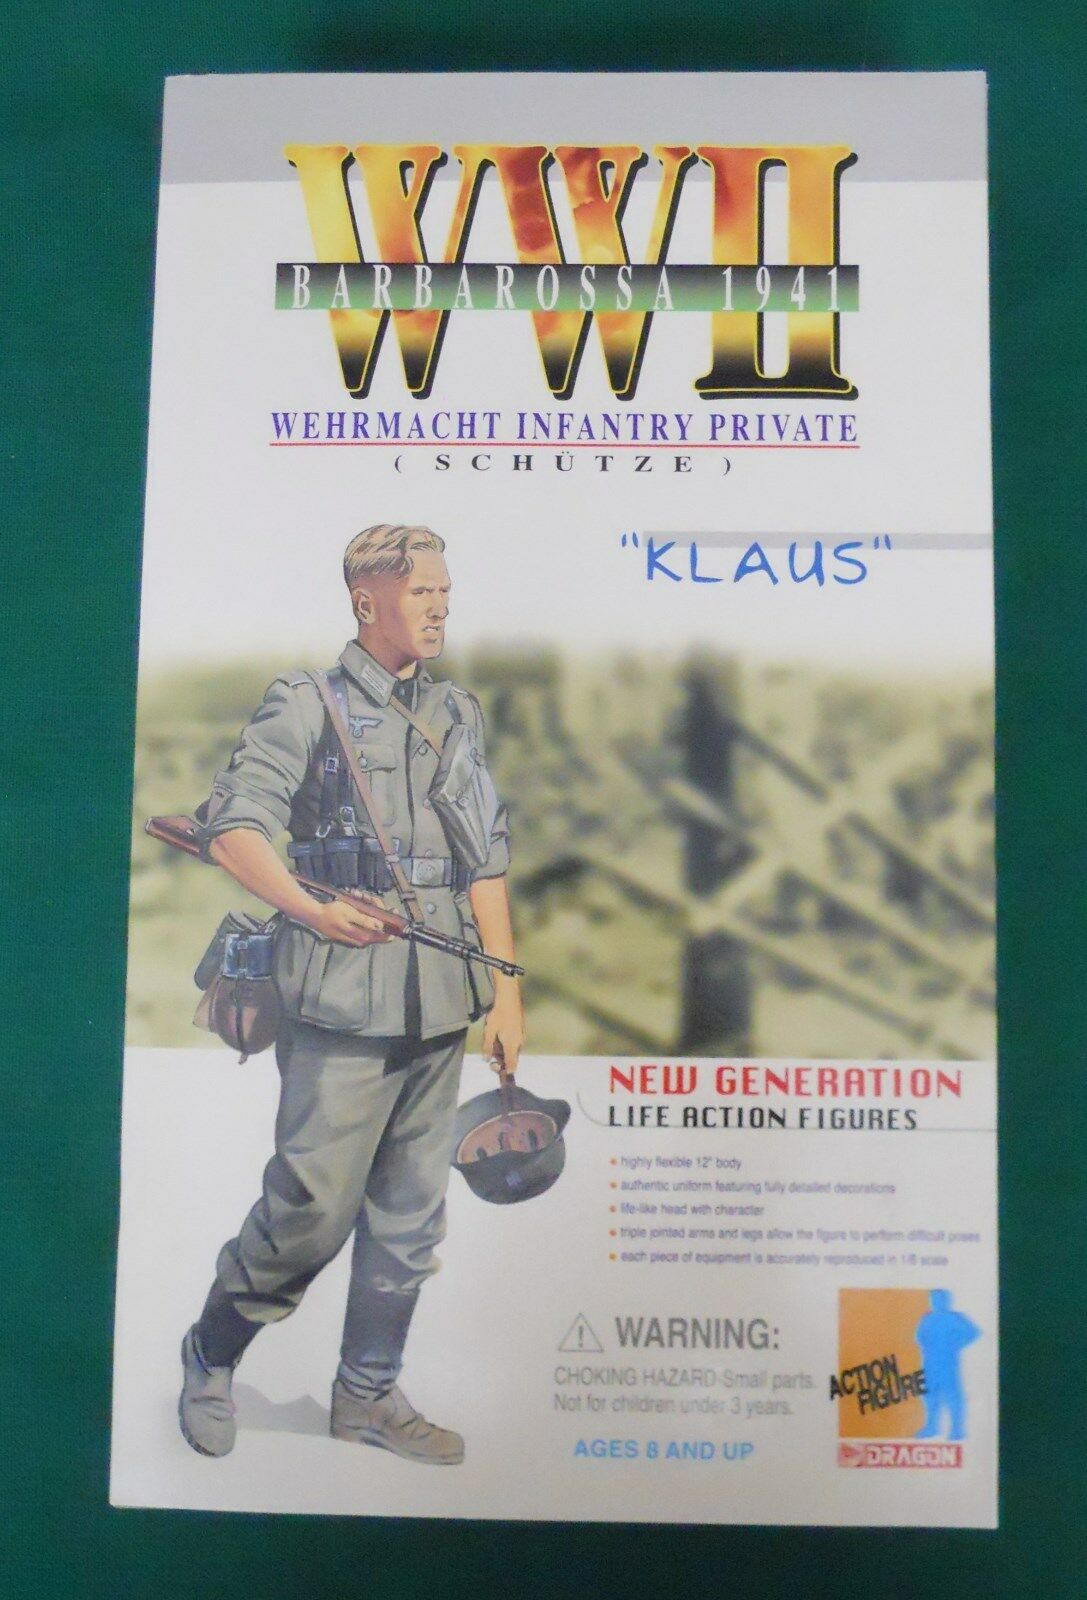 DRAGON 1/6 FIGURE WWII BARBAROSSA 1941 WEHRMACHT INFANTRY PRIVATE